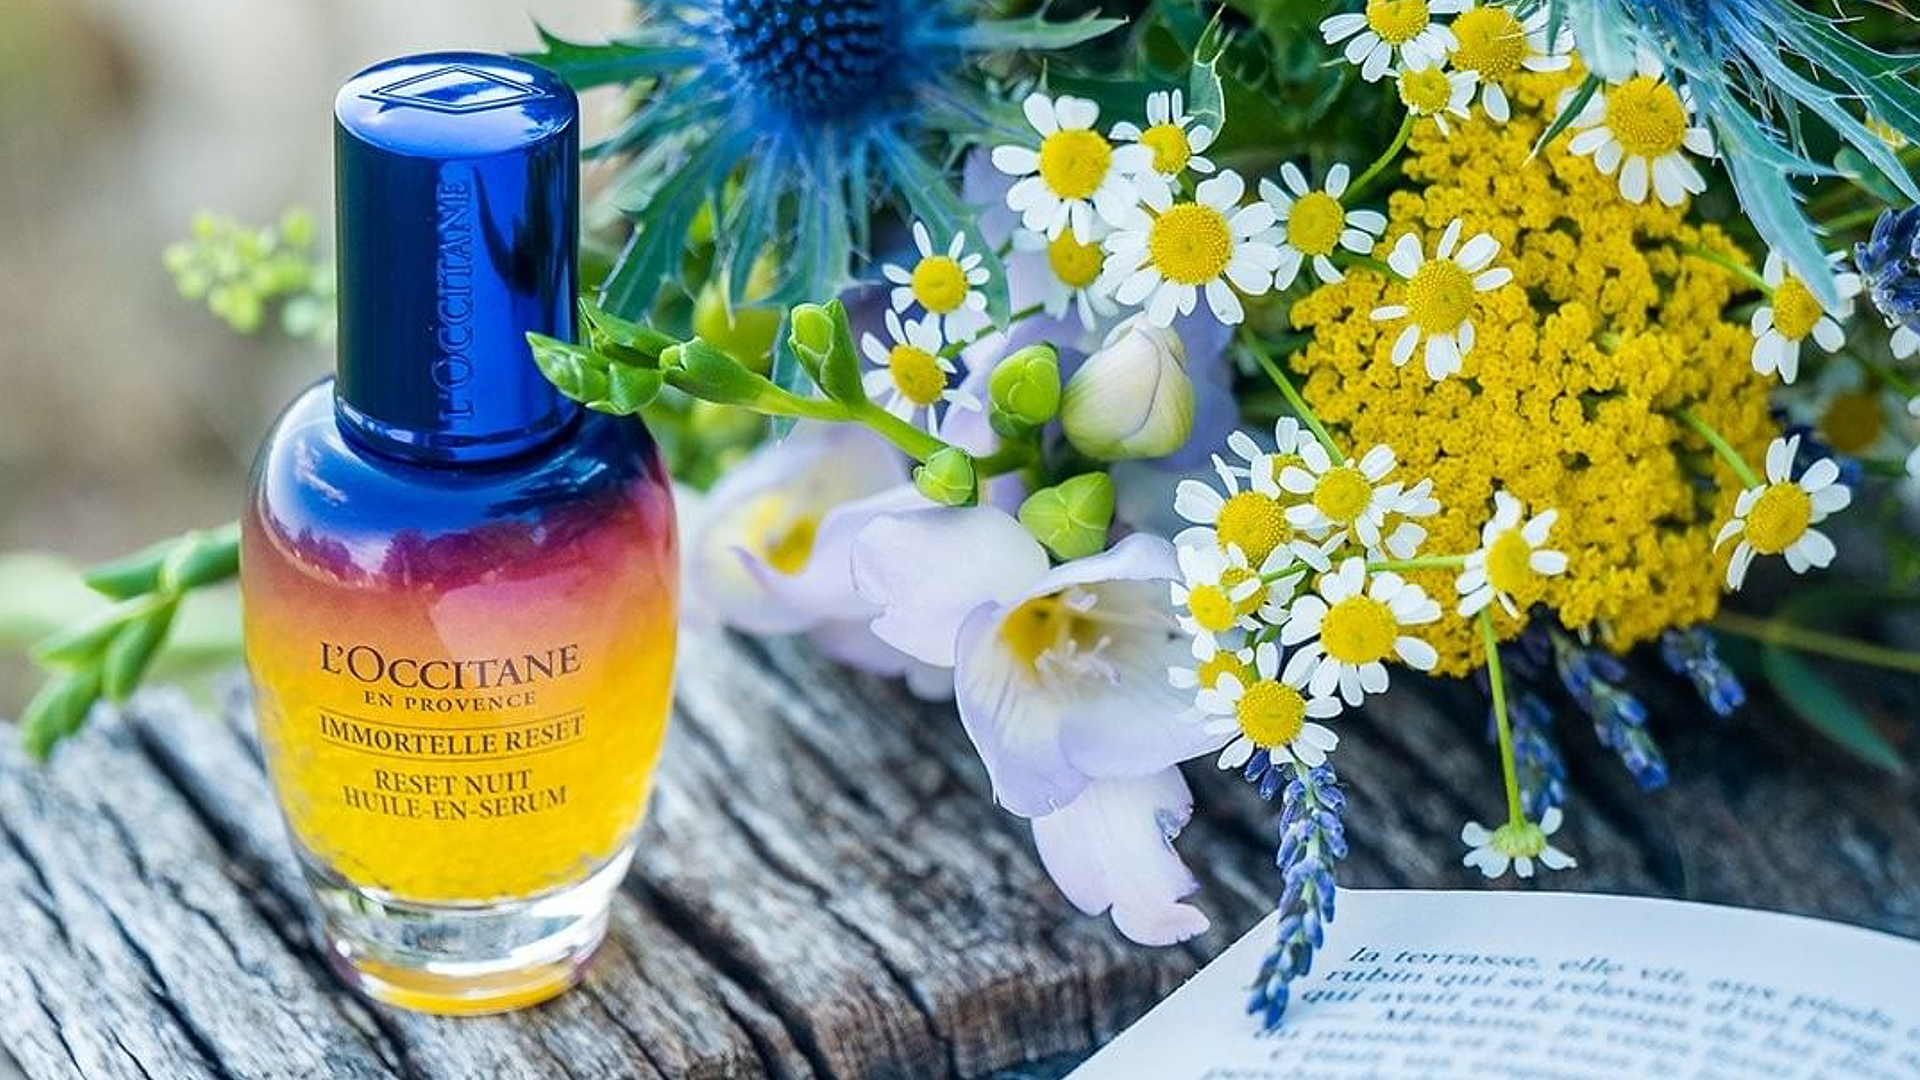 ¡Consigue tu kit responsable con L'Occitane!